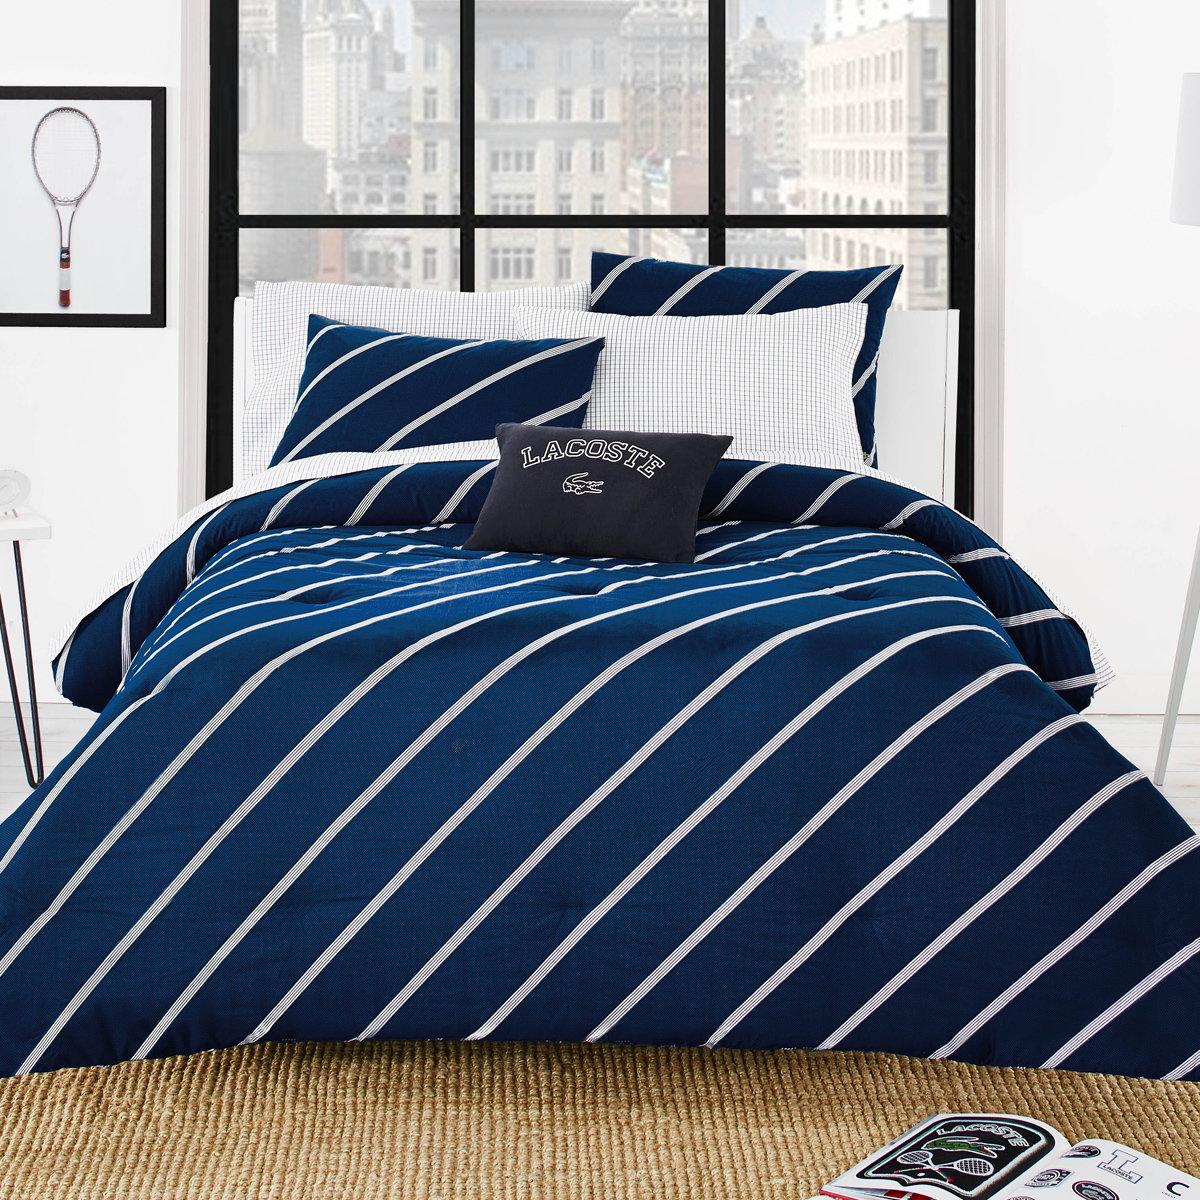 Lacoste Launches Brand New College Bedding Collection